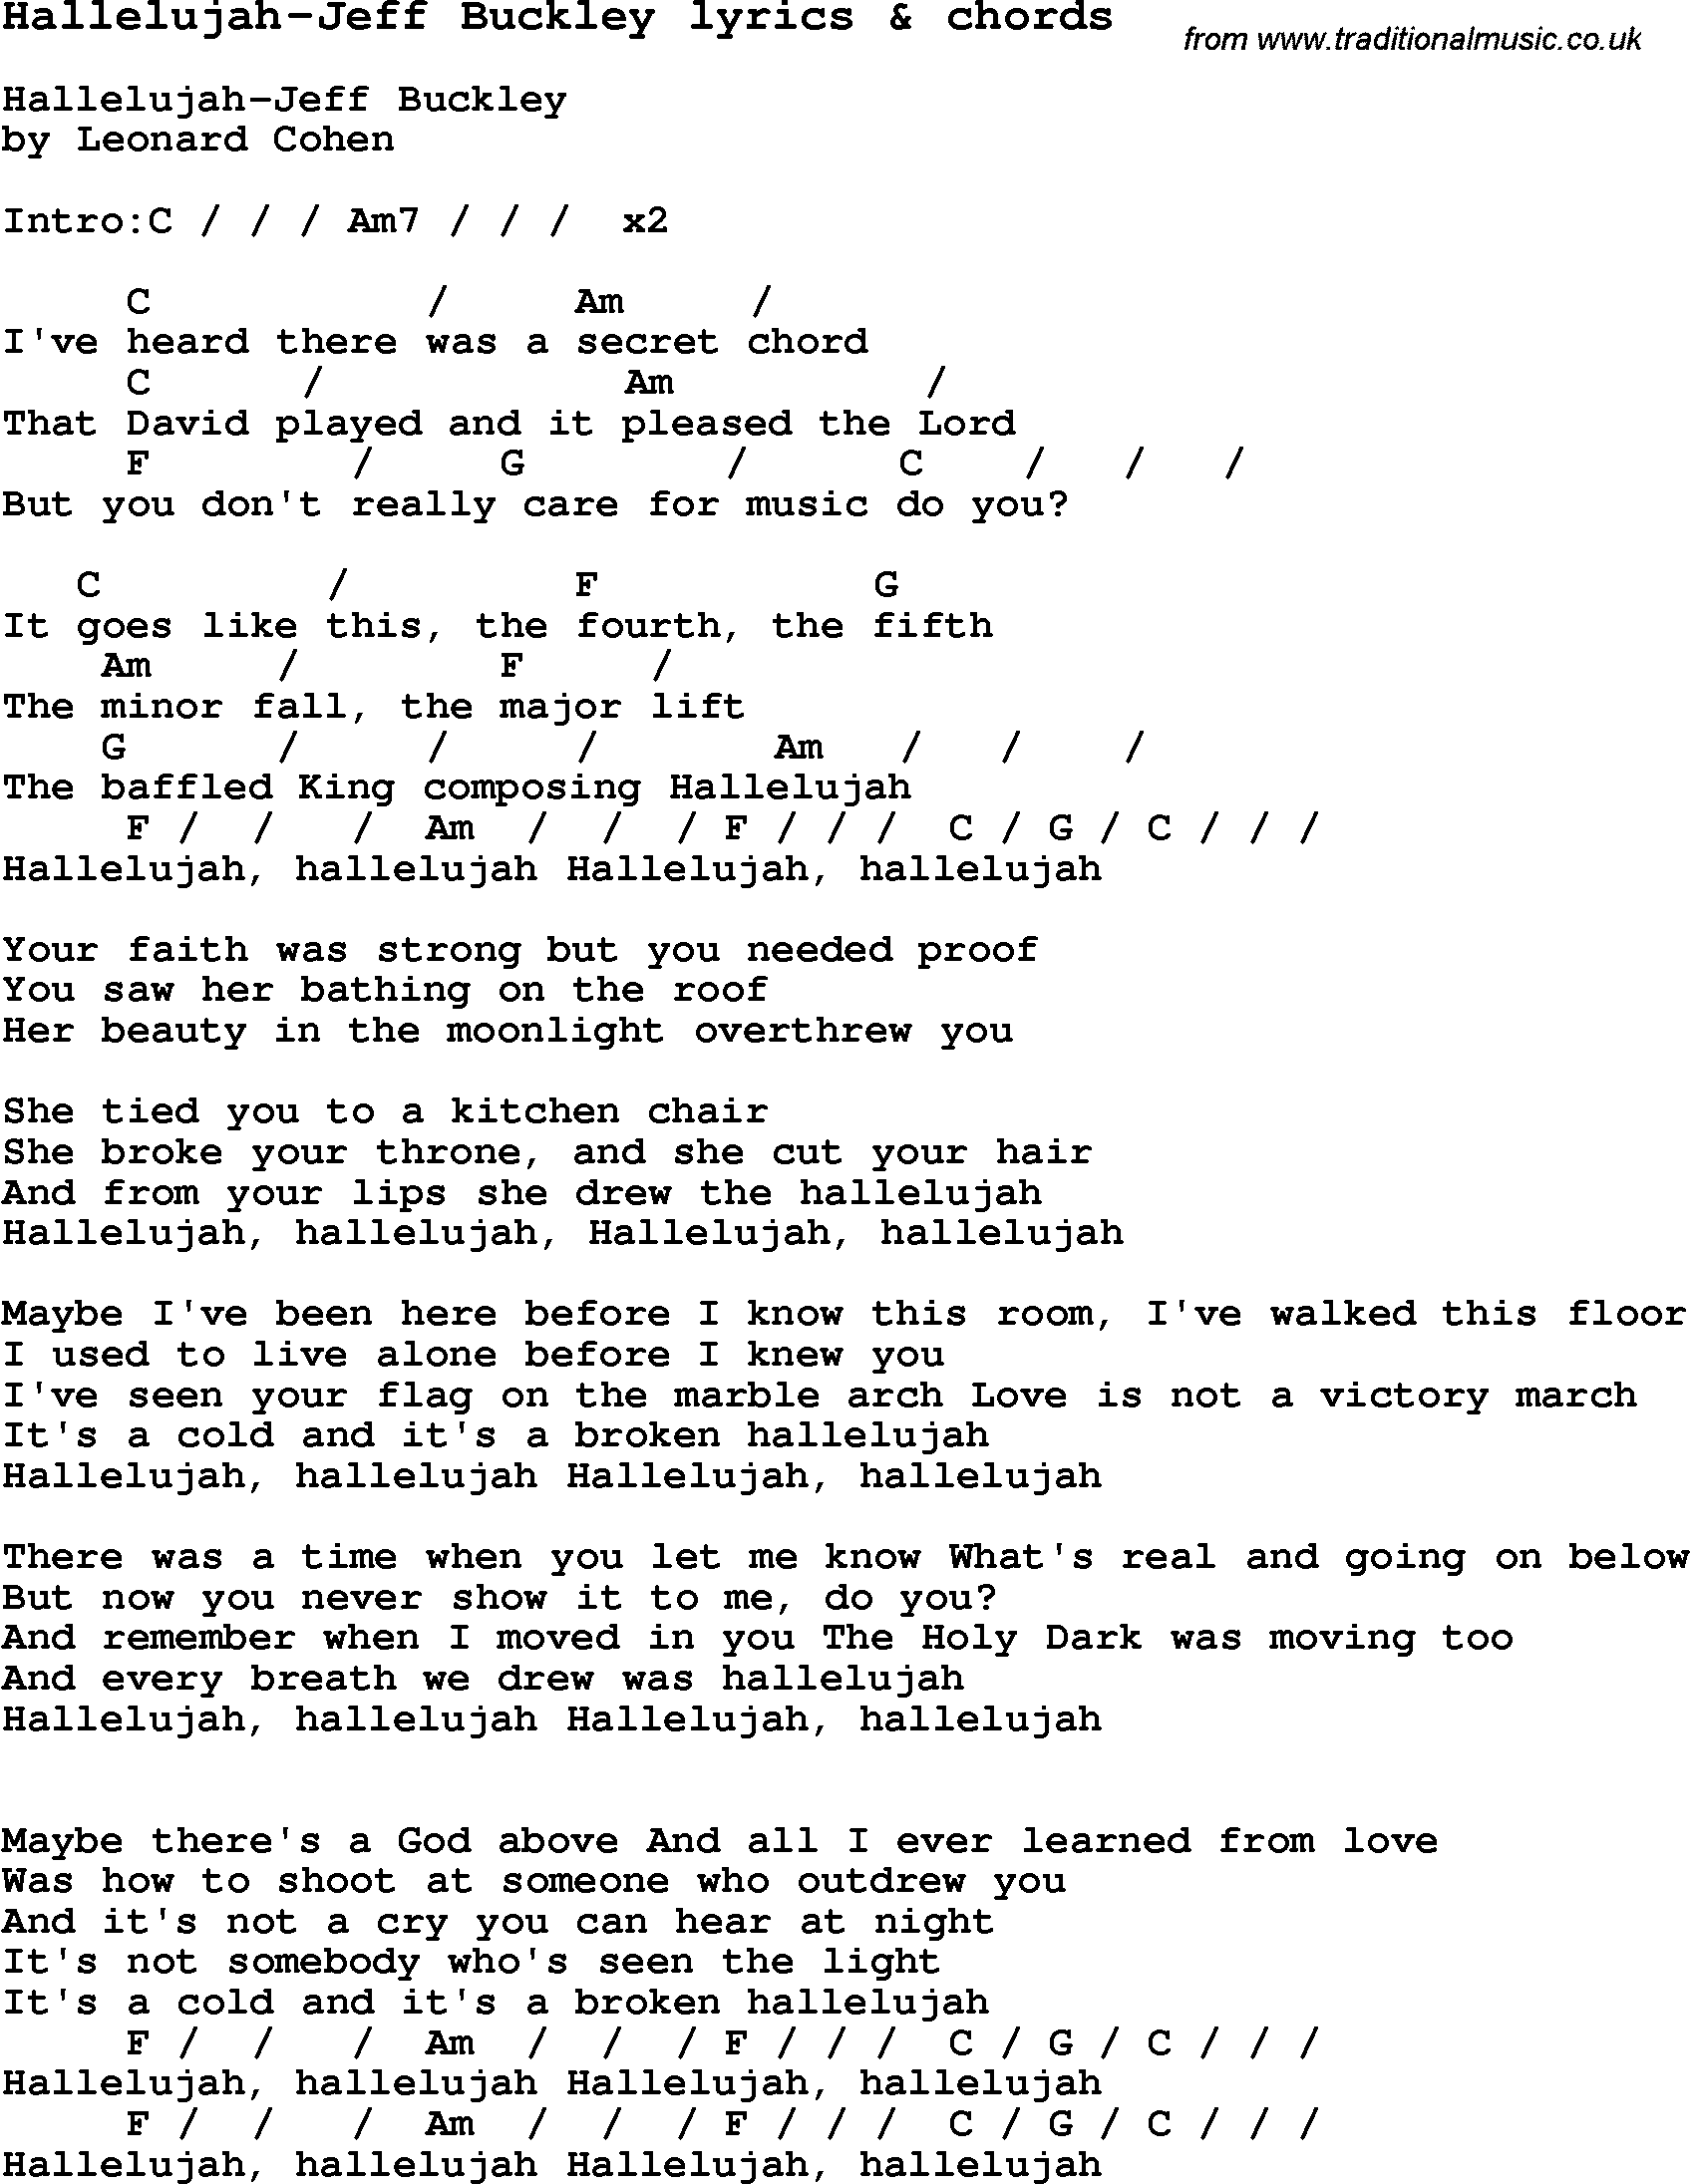 Love song lyrics forhallelujah jeff buckley with chords music love song lyrics forhallelujah jeff buckley with chords hexwebz Choice Image